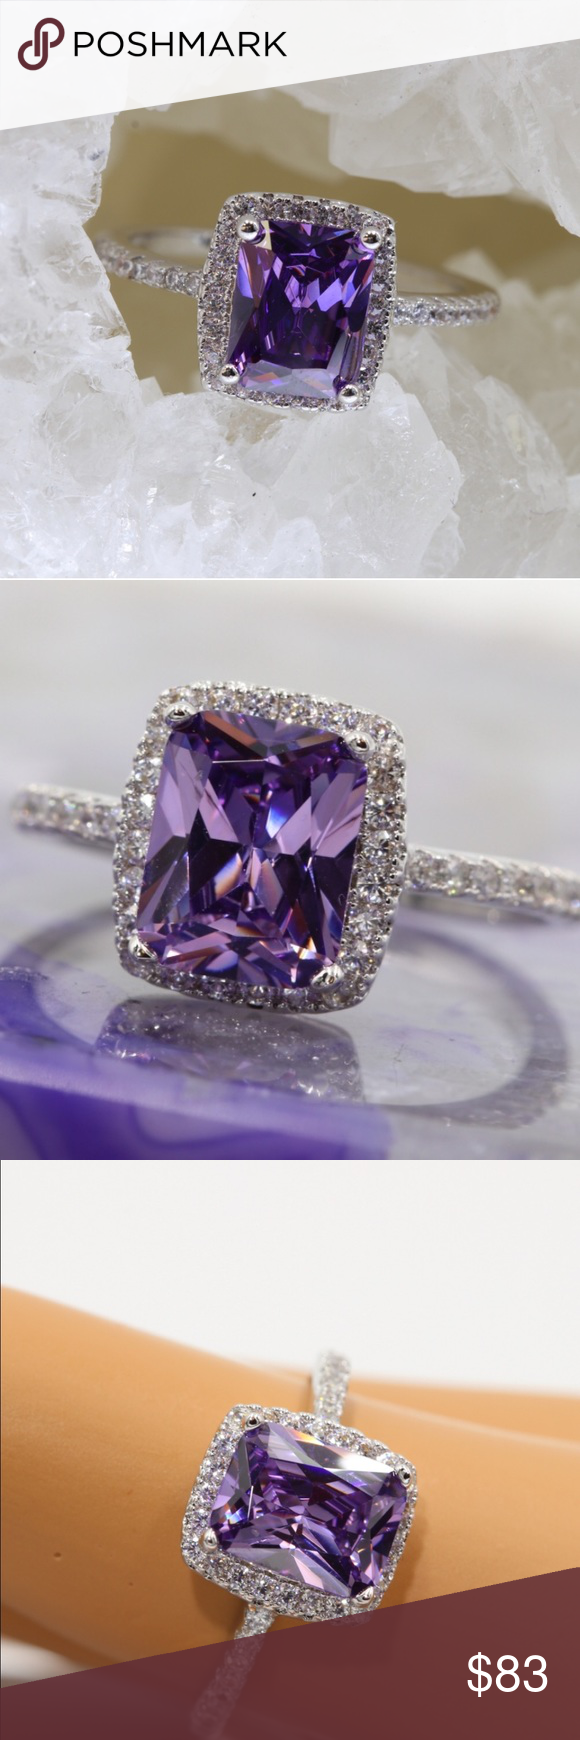 LUXURY ITALIAN BLING NEW LUXURY ITALIAN 5AAAAA 3 CARAT PURPLE ZIRCON WITH 40 AAA CLEAR ELEMENTS COMPLIMENTING IT THE HIGH QUALITY OF PLATINUM PLATING IN THIS RING! STONE MEASURES APPROX 7MM X 9MM SIZE 7 includes black velvet gift box ALPHA Jewelry Rings